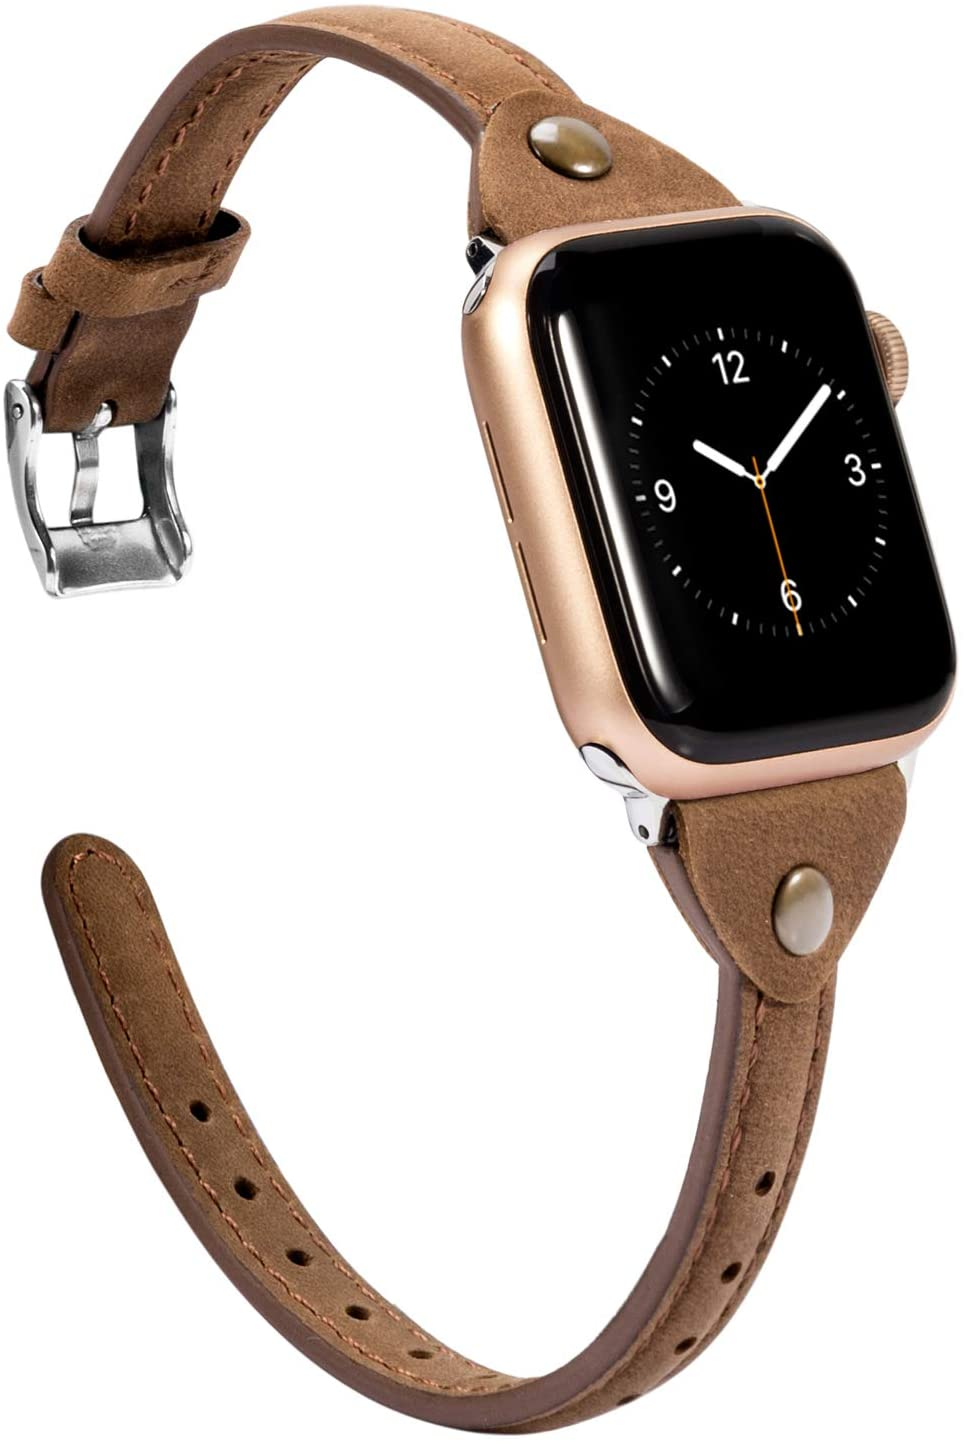 Wearlizer Scrub Deep Brown Leather Compatible with Apple Watch Thin Leather Band 42mm 44mm for iWatch SE Womens Mens Stylish Narrow Strap Simple Rivet Cute Wristband (Silver Clasp) Series 6 5 4 3 2 1